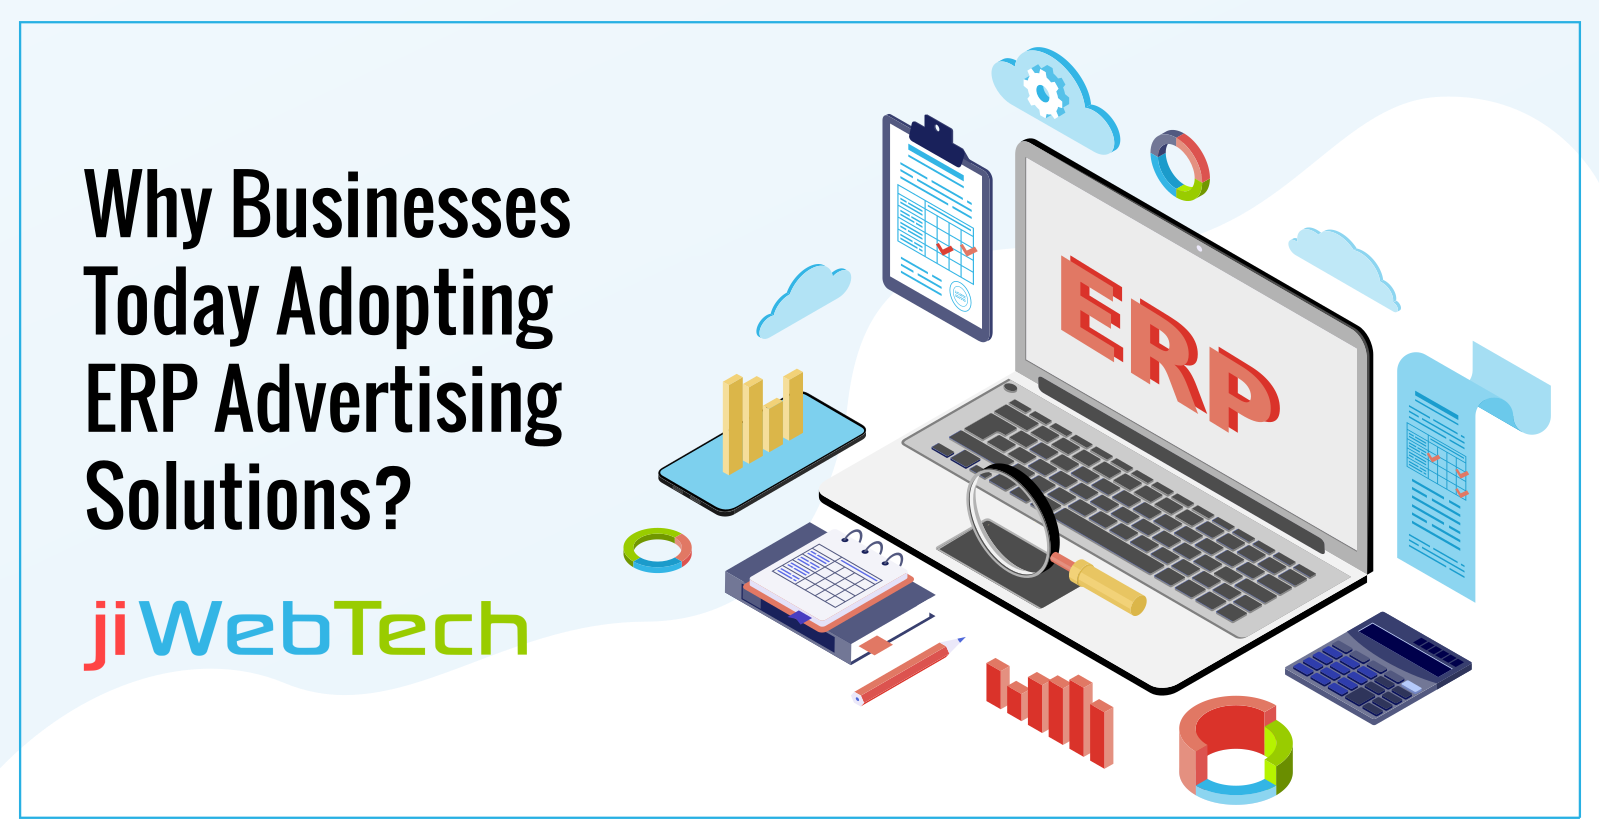 Why Businesses Today Adopting ERP Advertising Solutions?